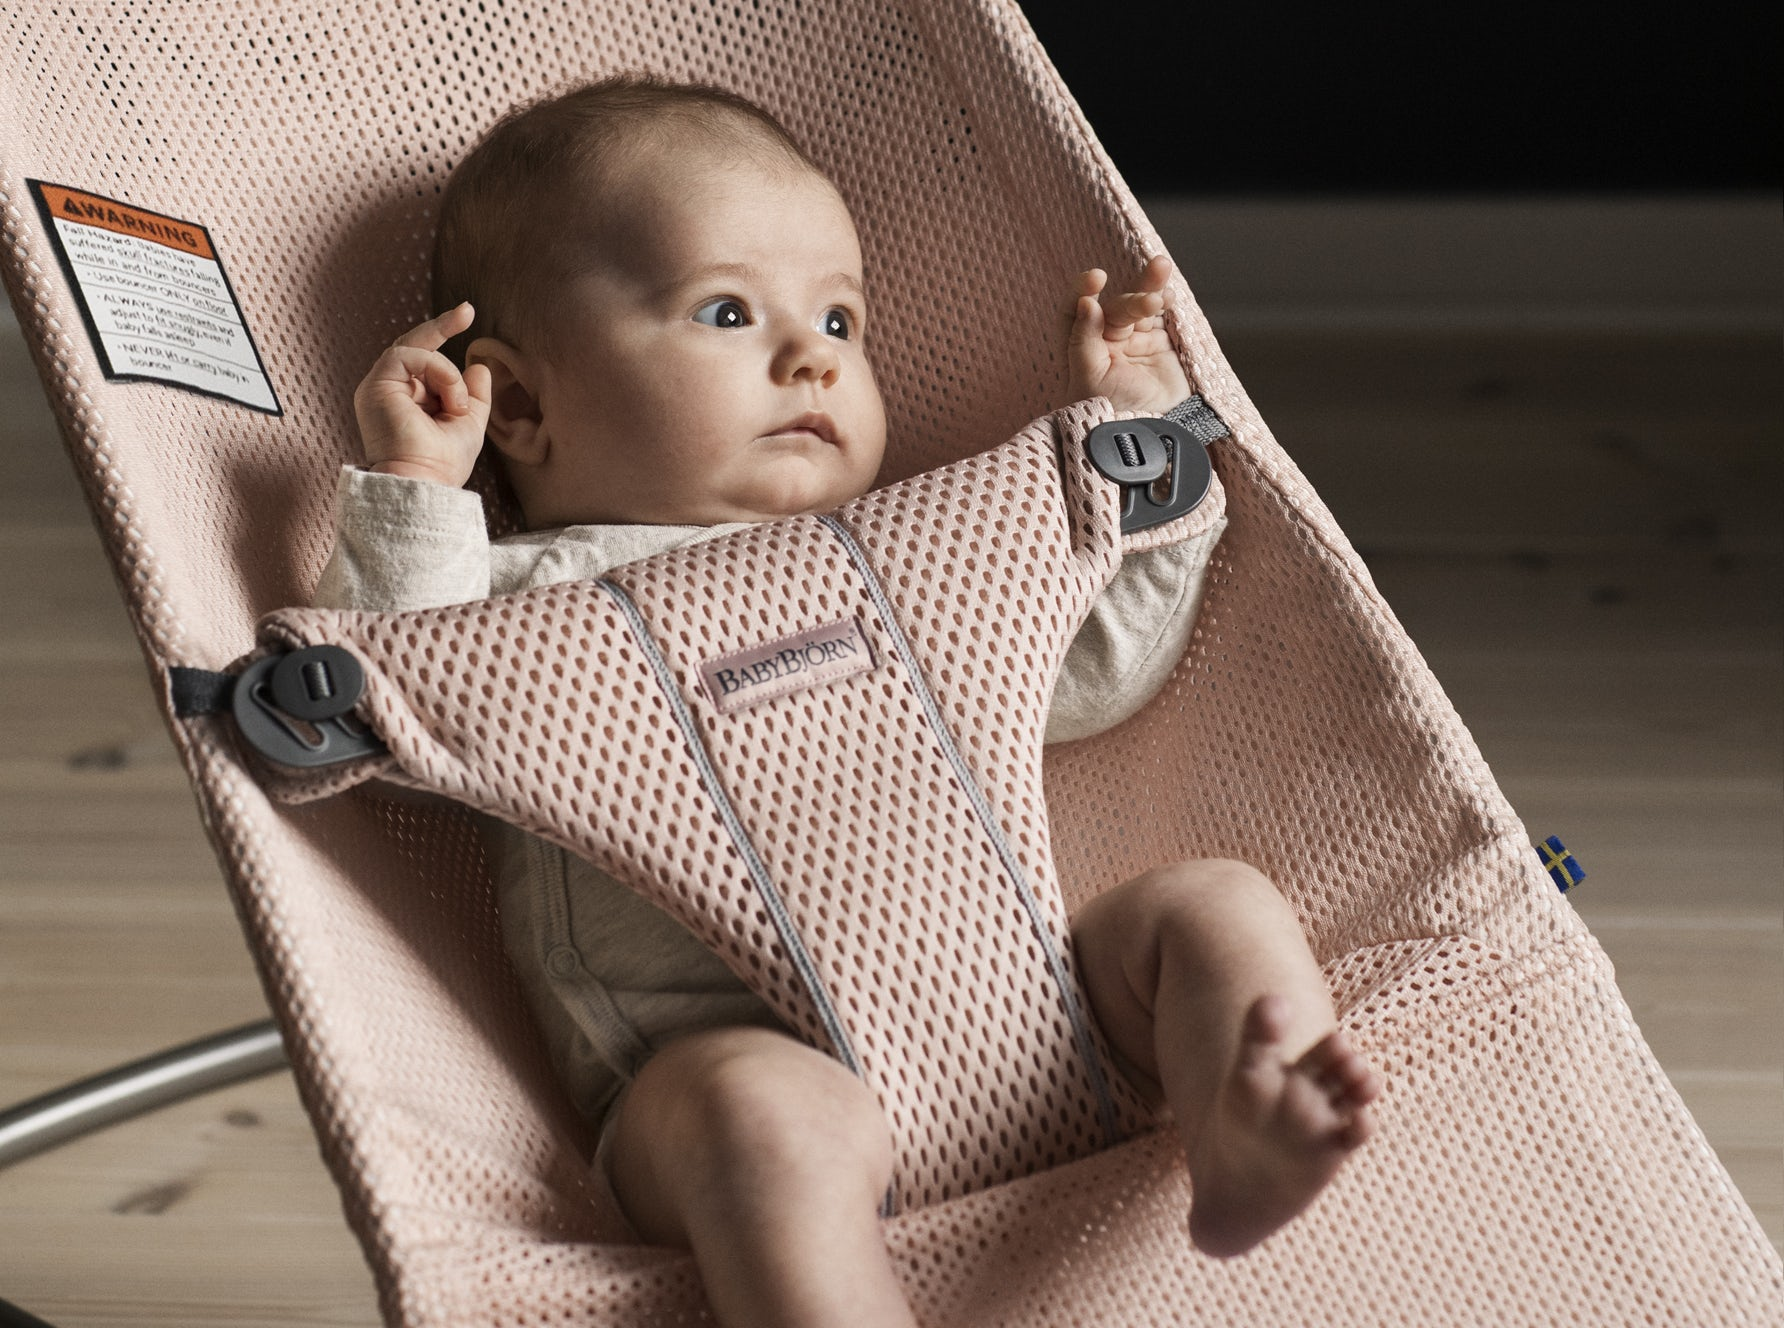 New Baby Bouncer Bliss Mesh Pearly pink 006001, soft and airy and perfect for newborns - BABYBJÖRN